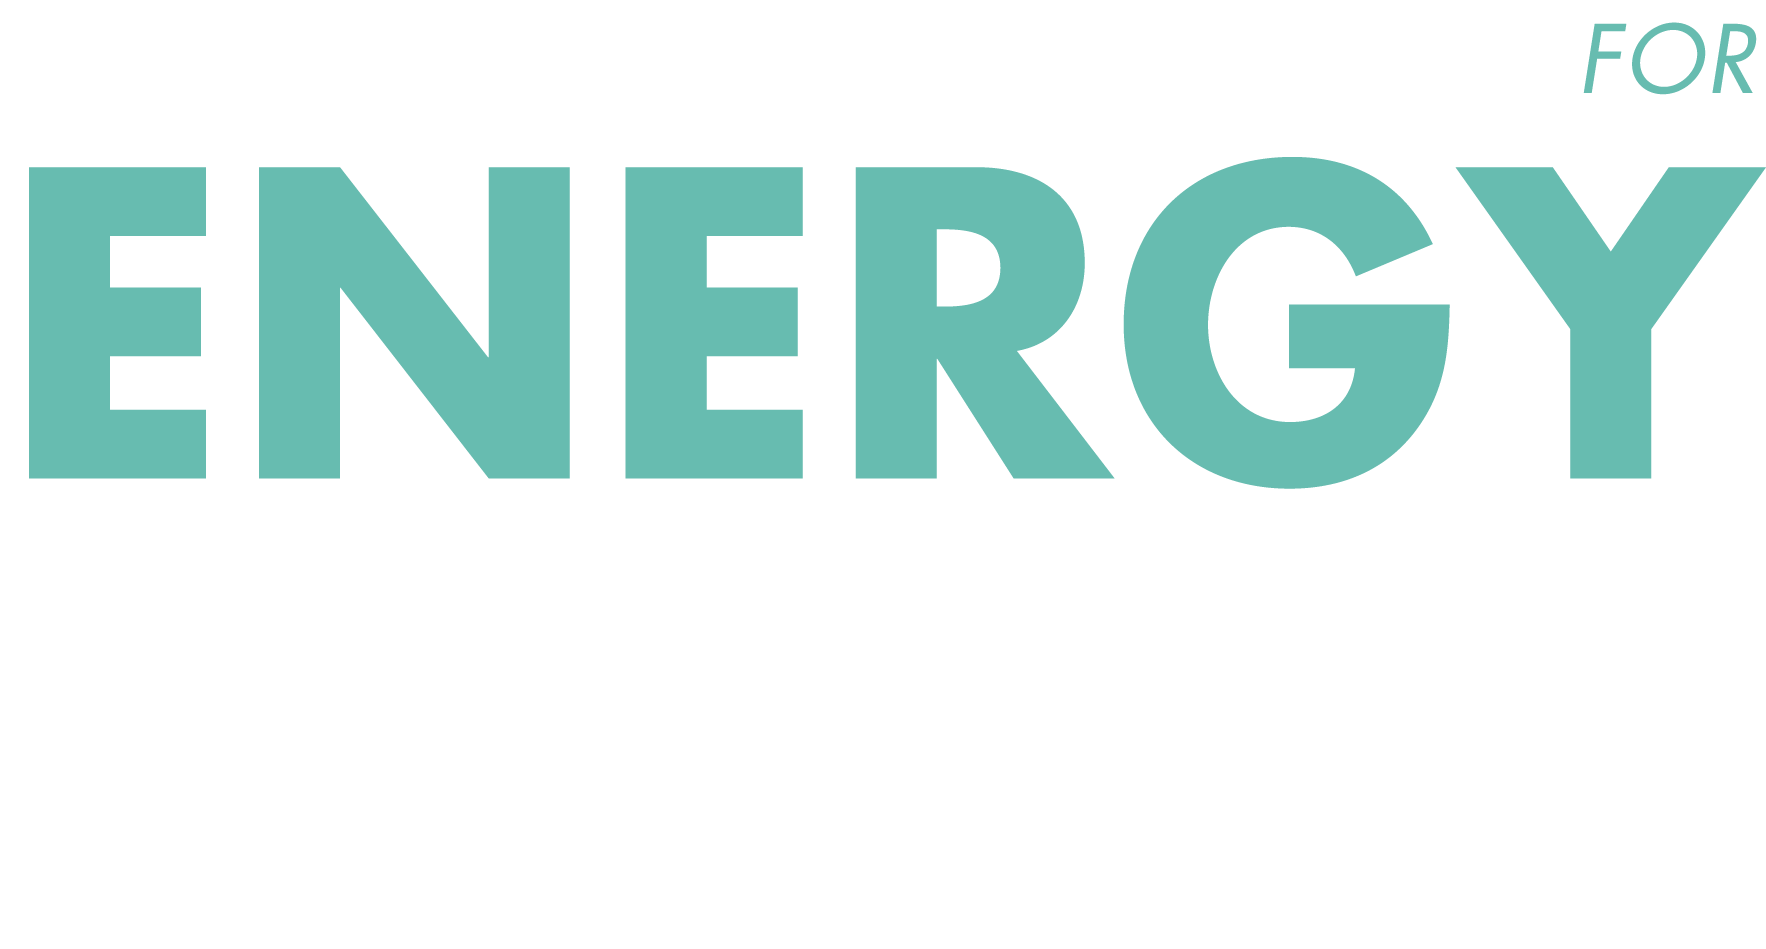 Central Valley Coalition for Energy and Jobs